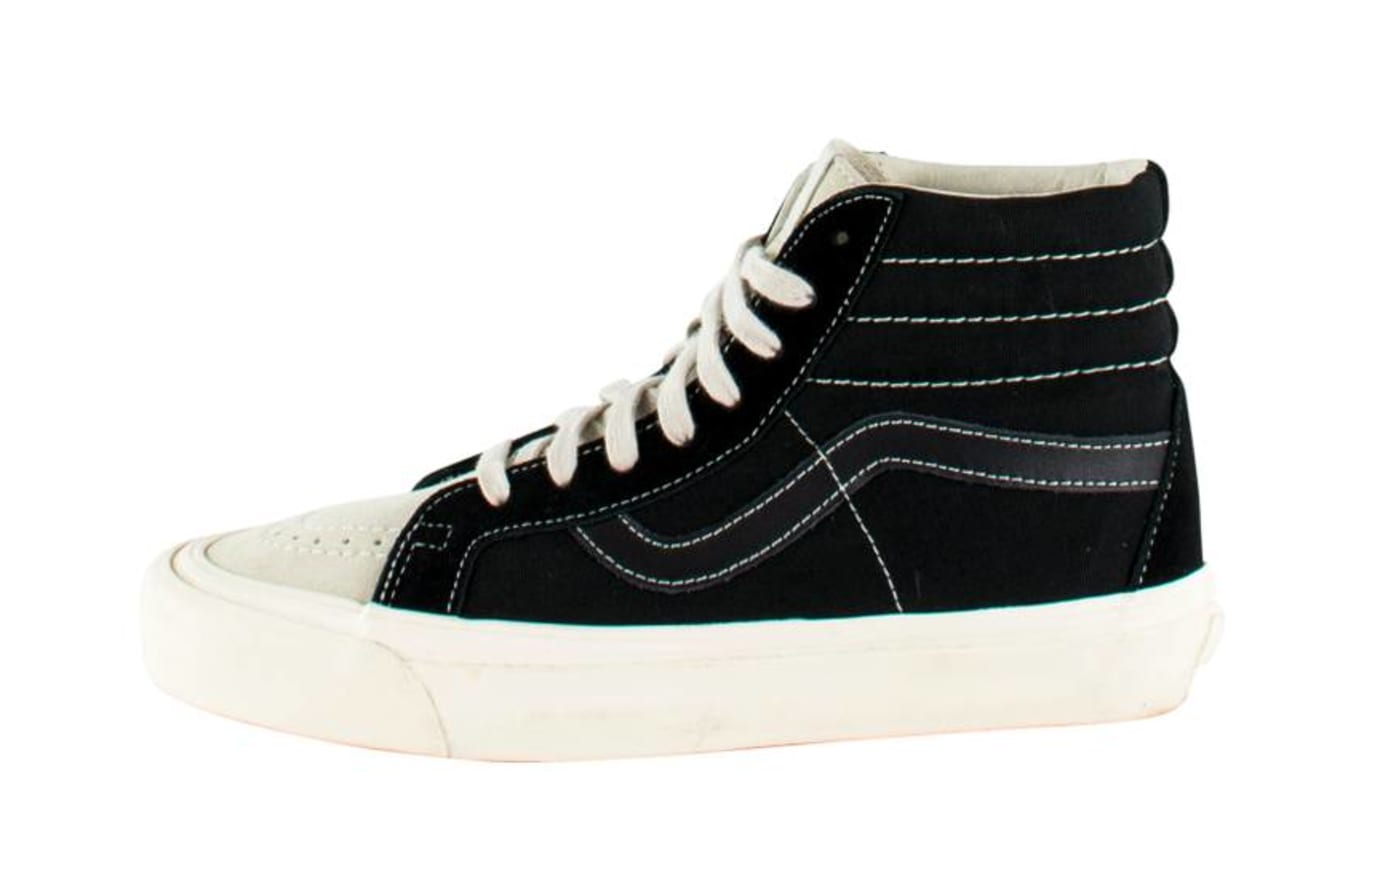 Fear of God x Vans Sk8-Hi Black Sample